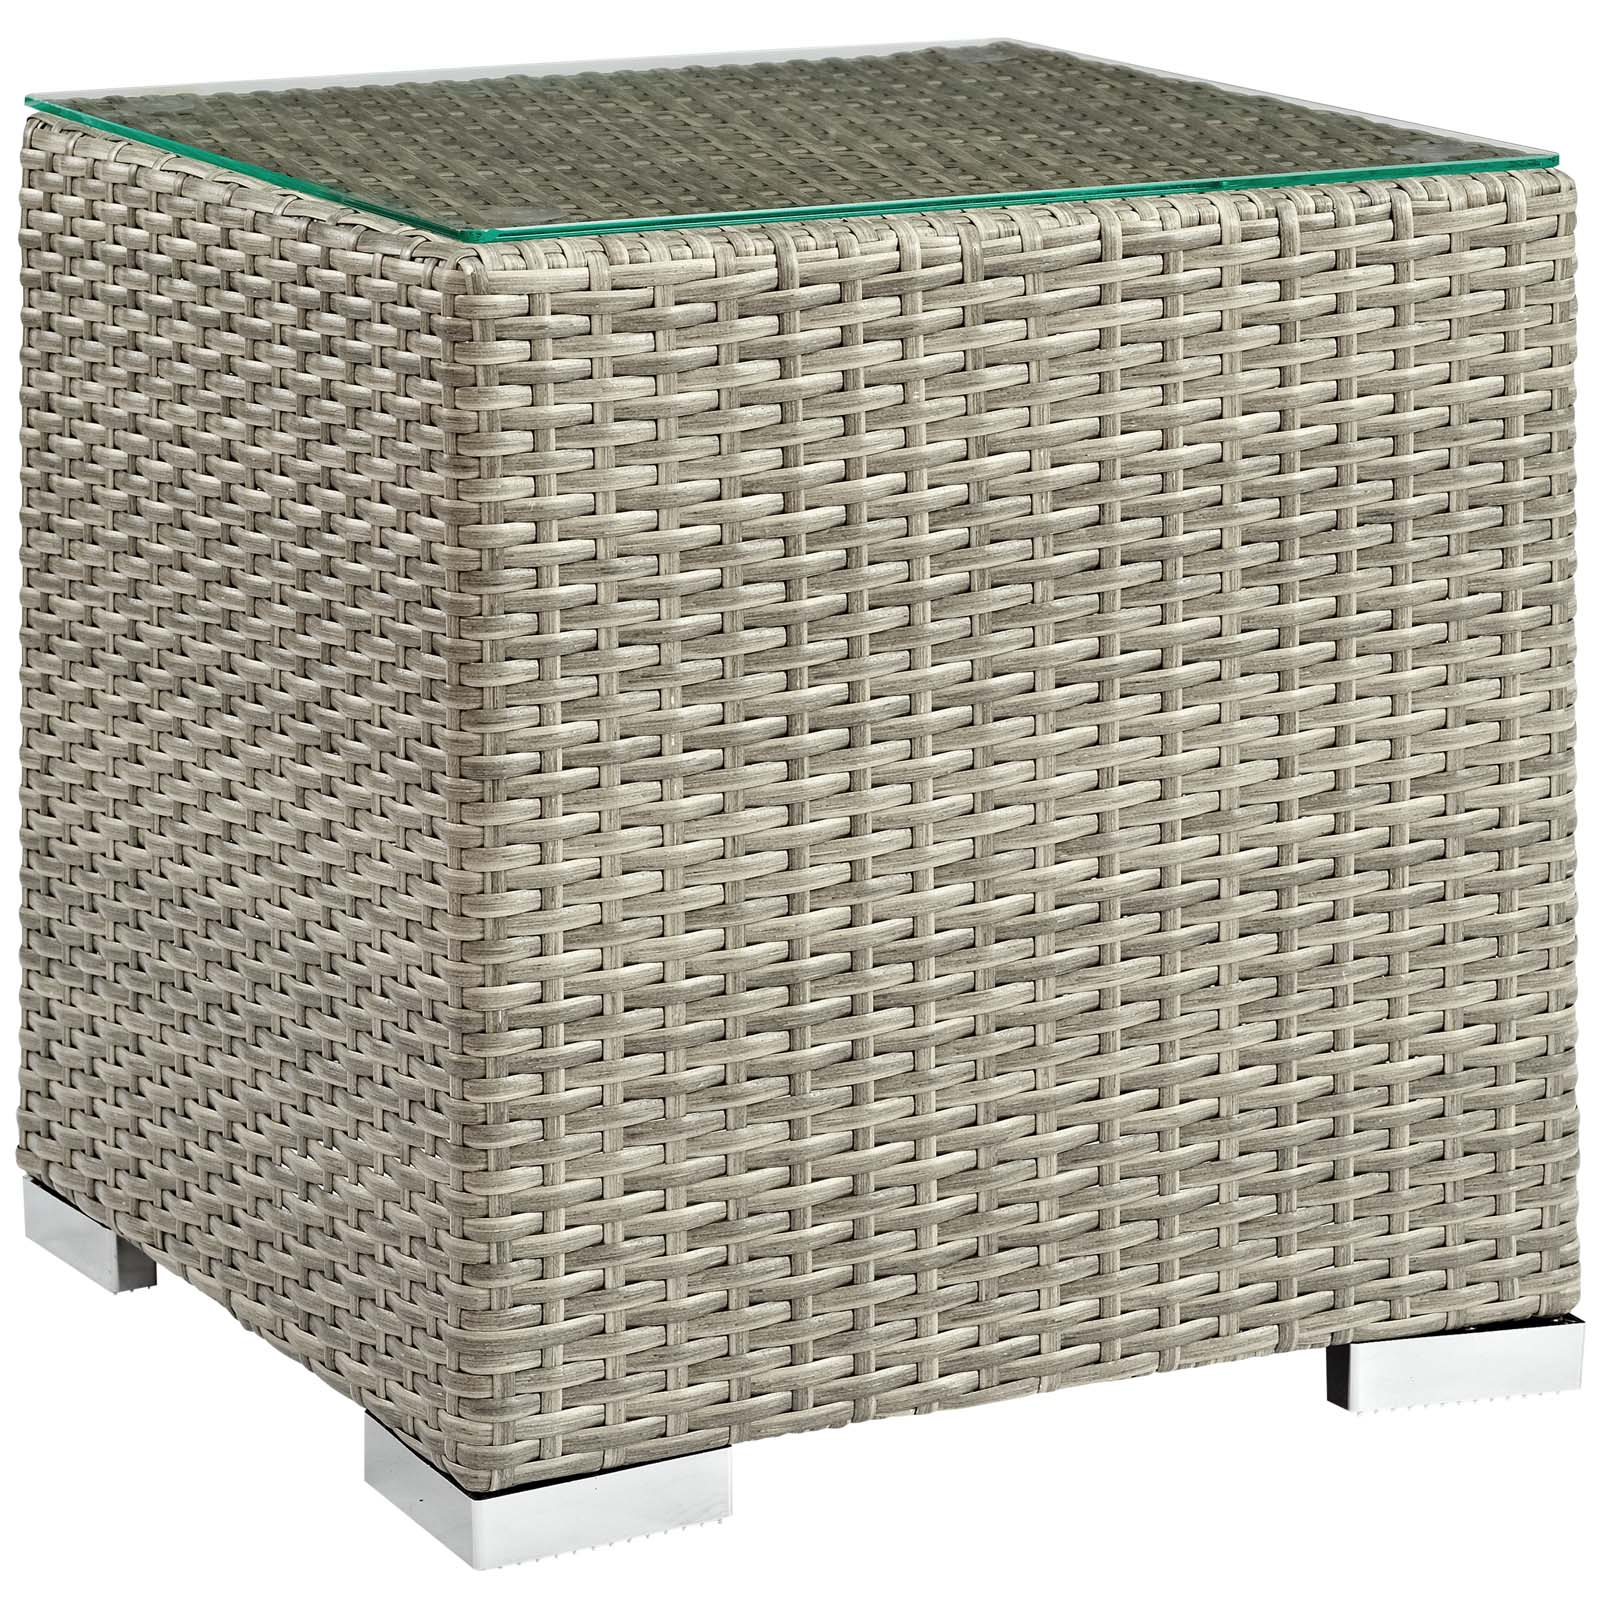 Modway Repose Outdoor Patio Side Table in Light Gray